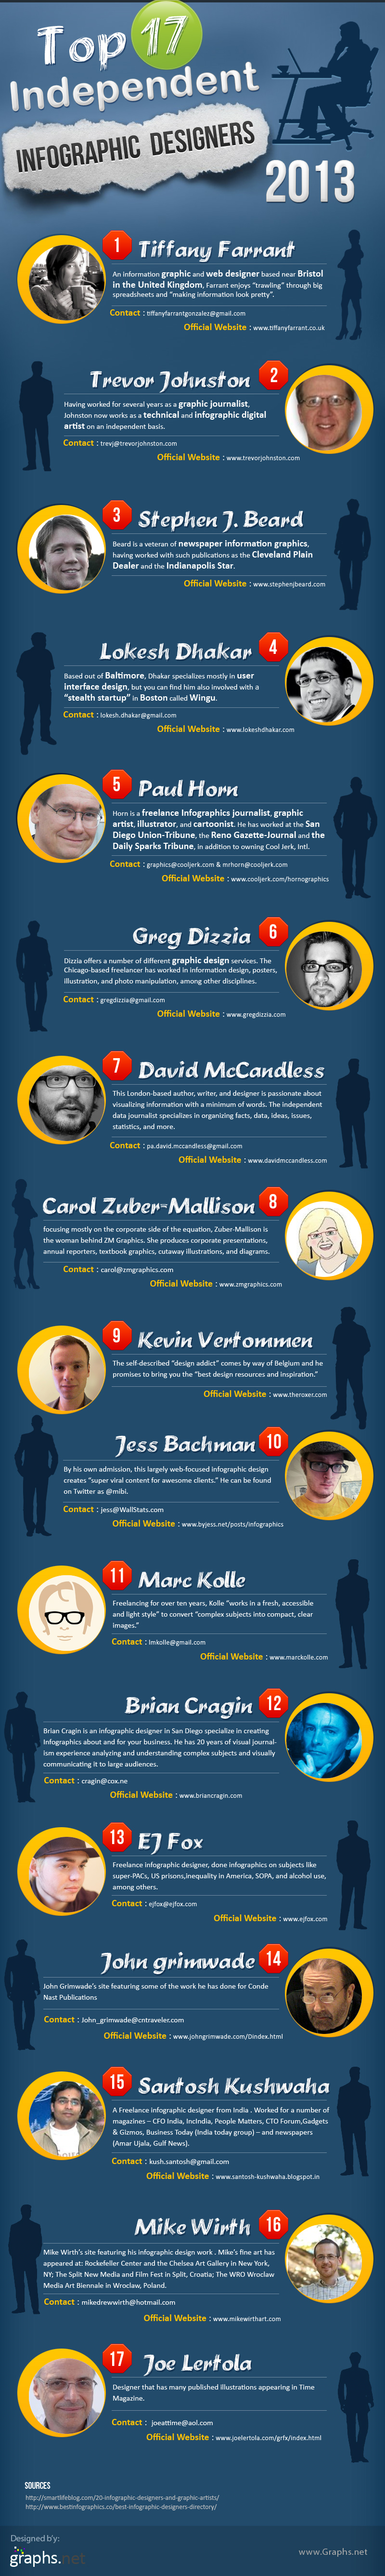 Top 17 Independent Infographic Designers 2013